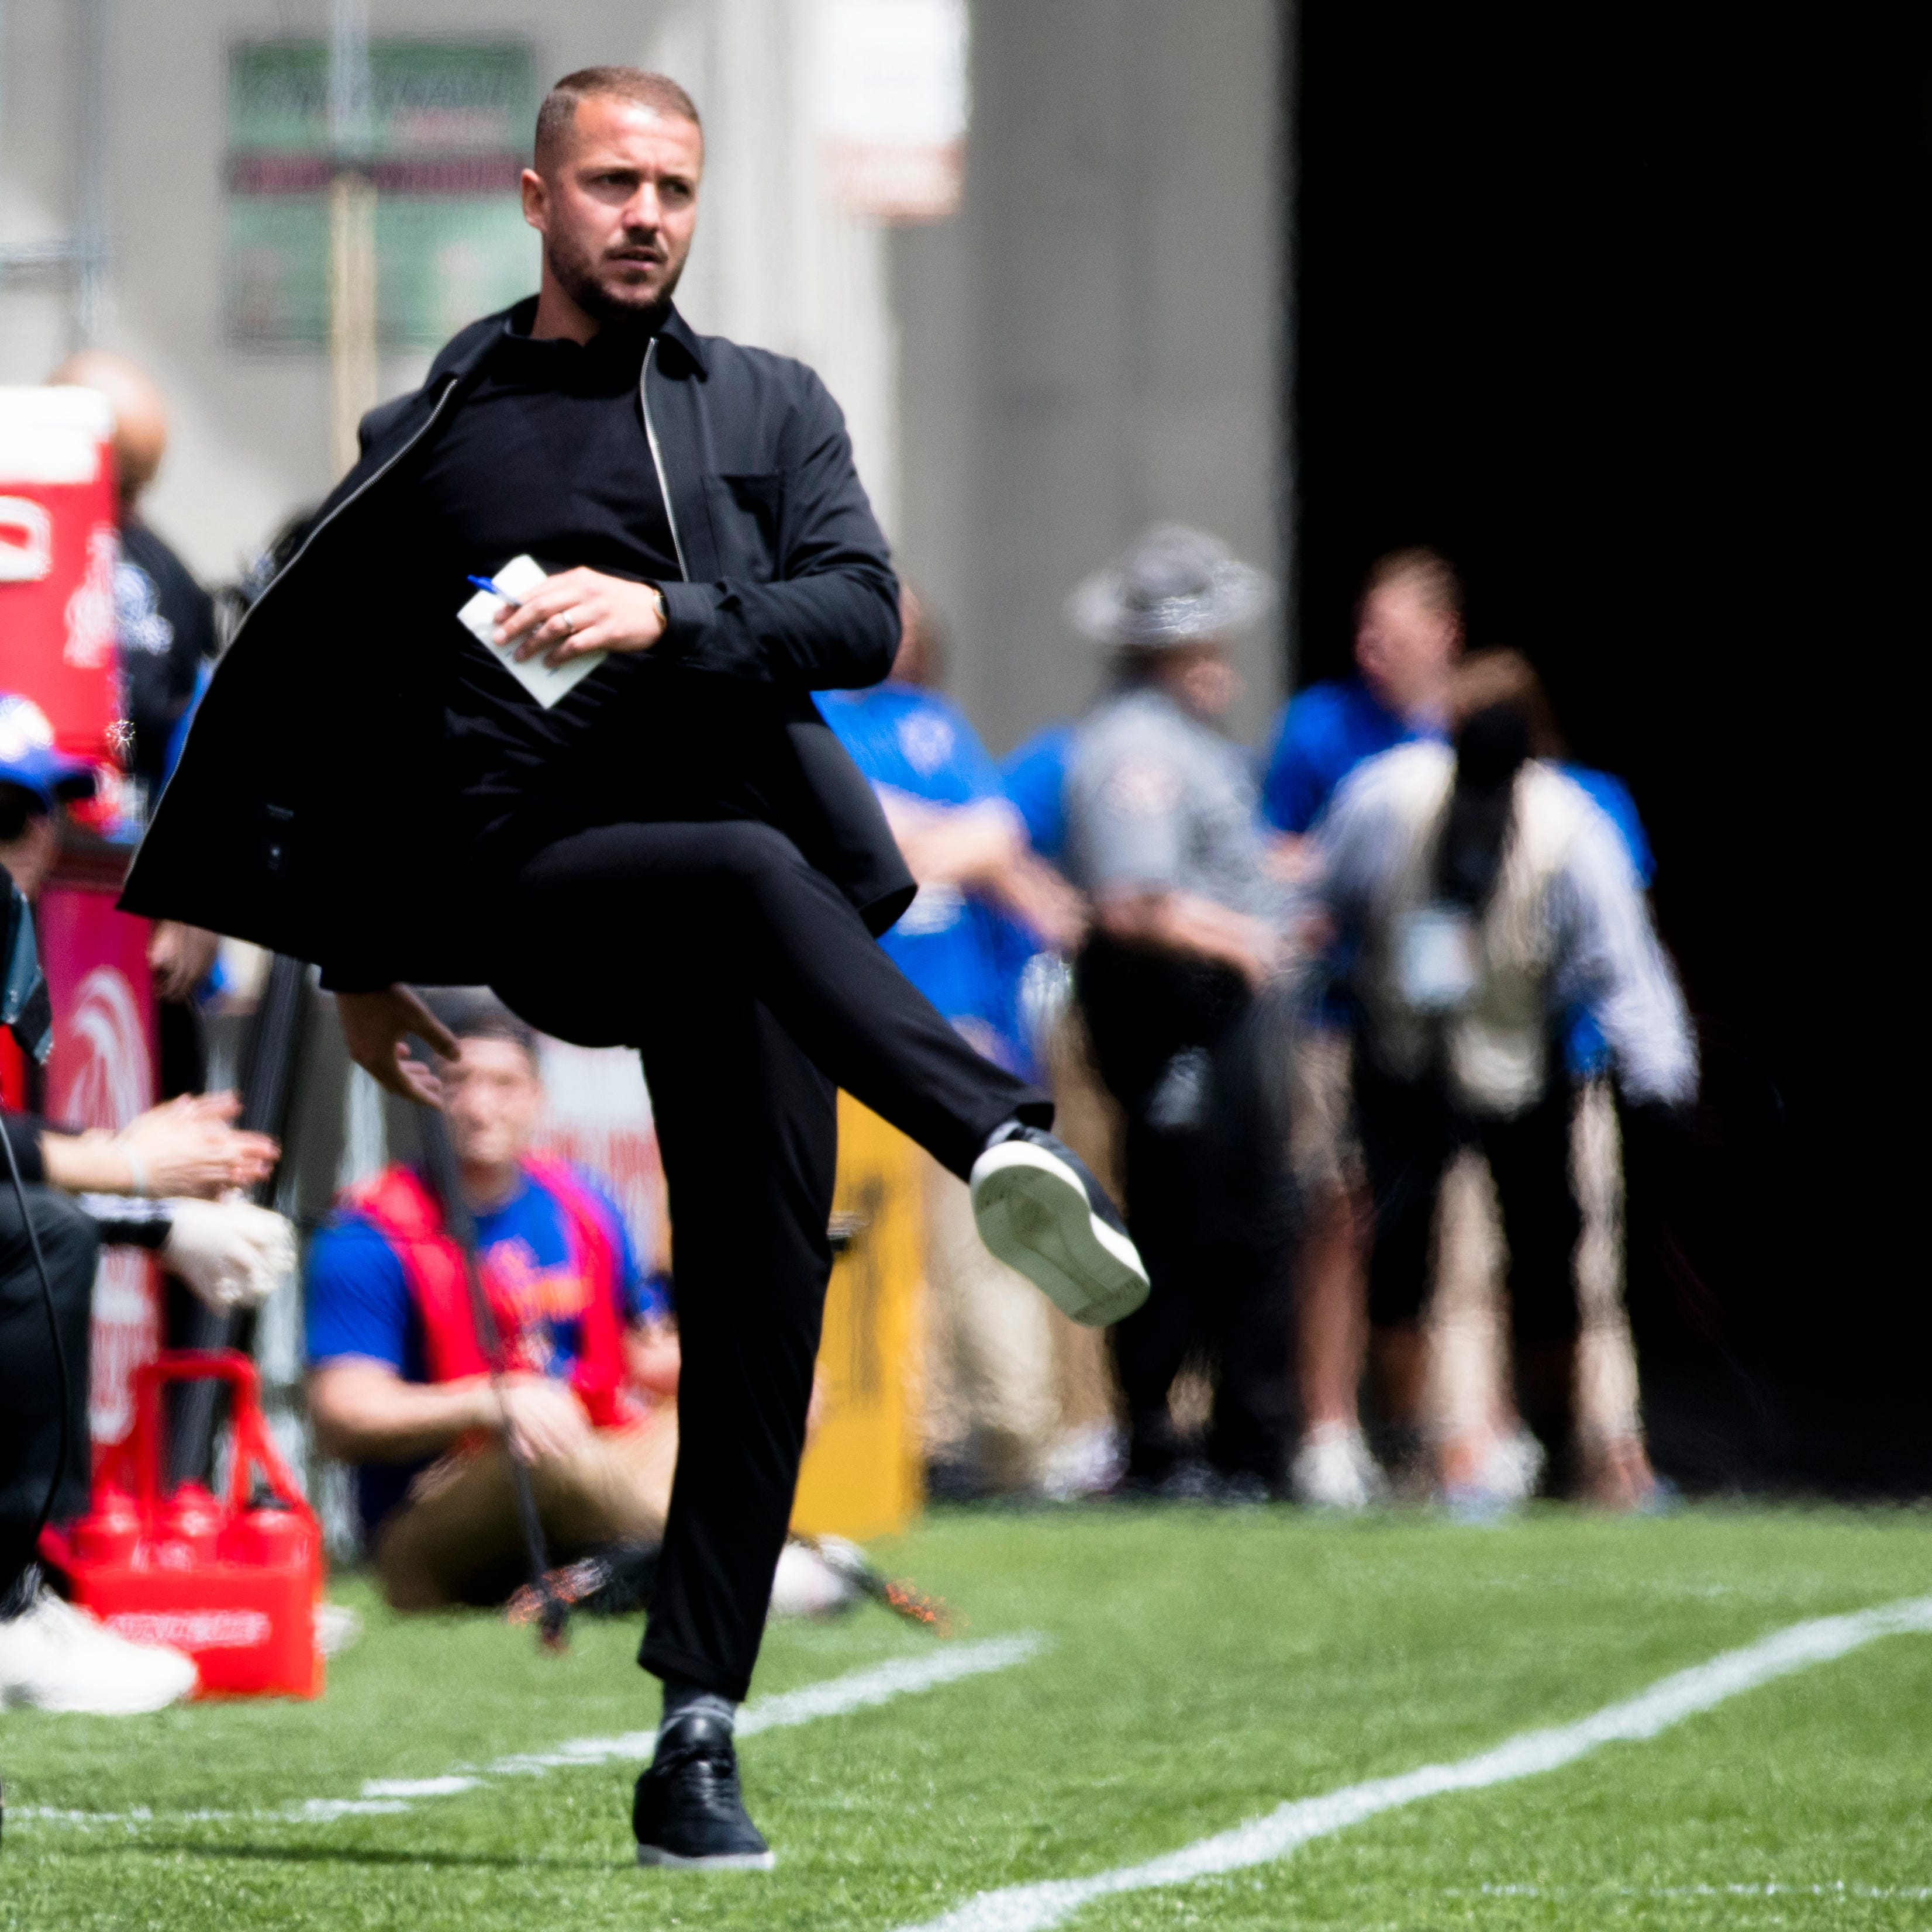 Paul Daugherty: The Yoann Damet era begins for FC Cincinnati